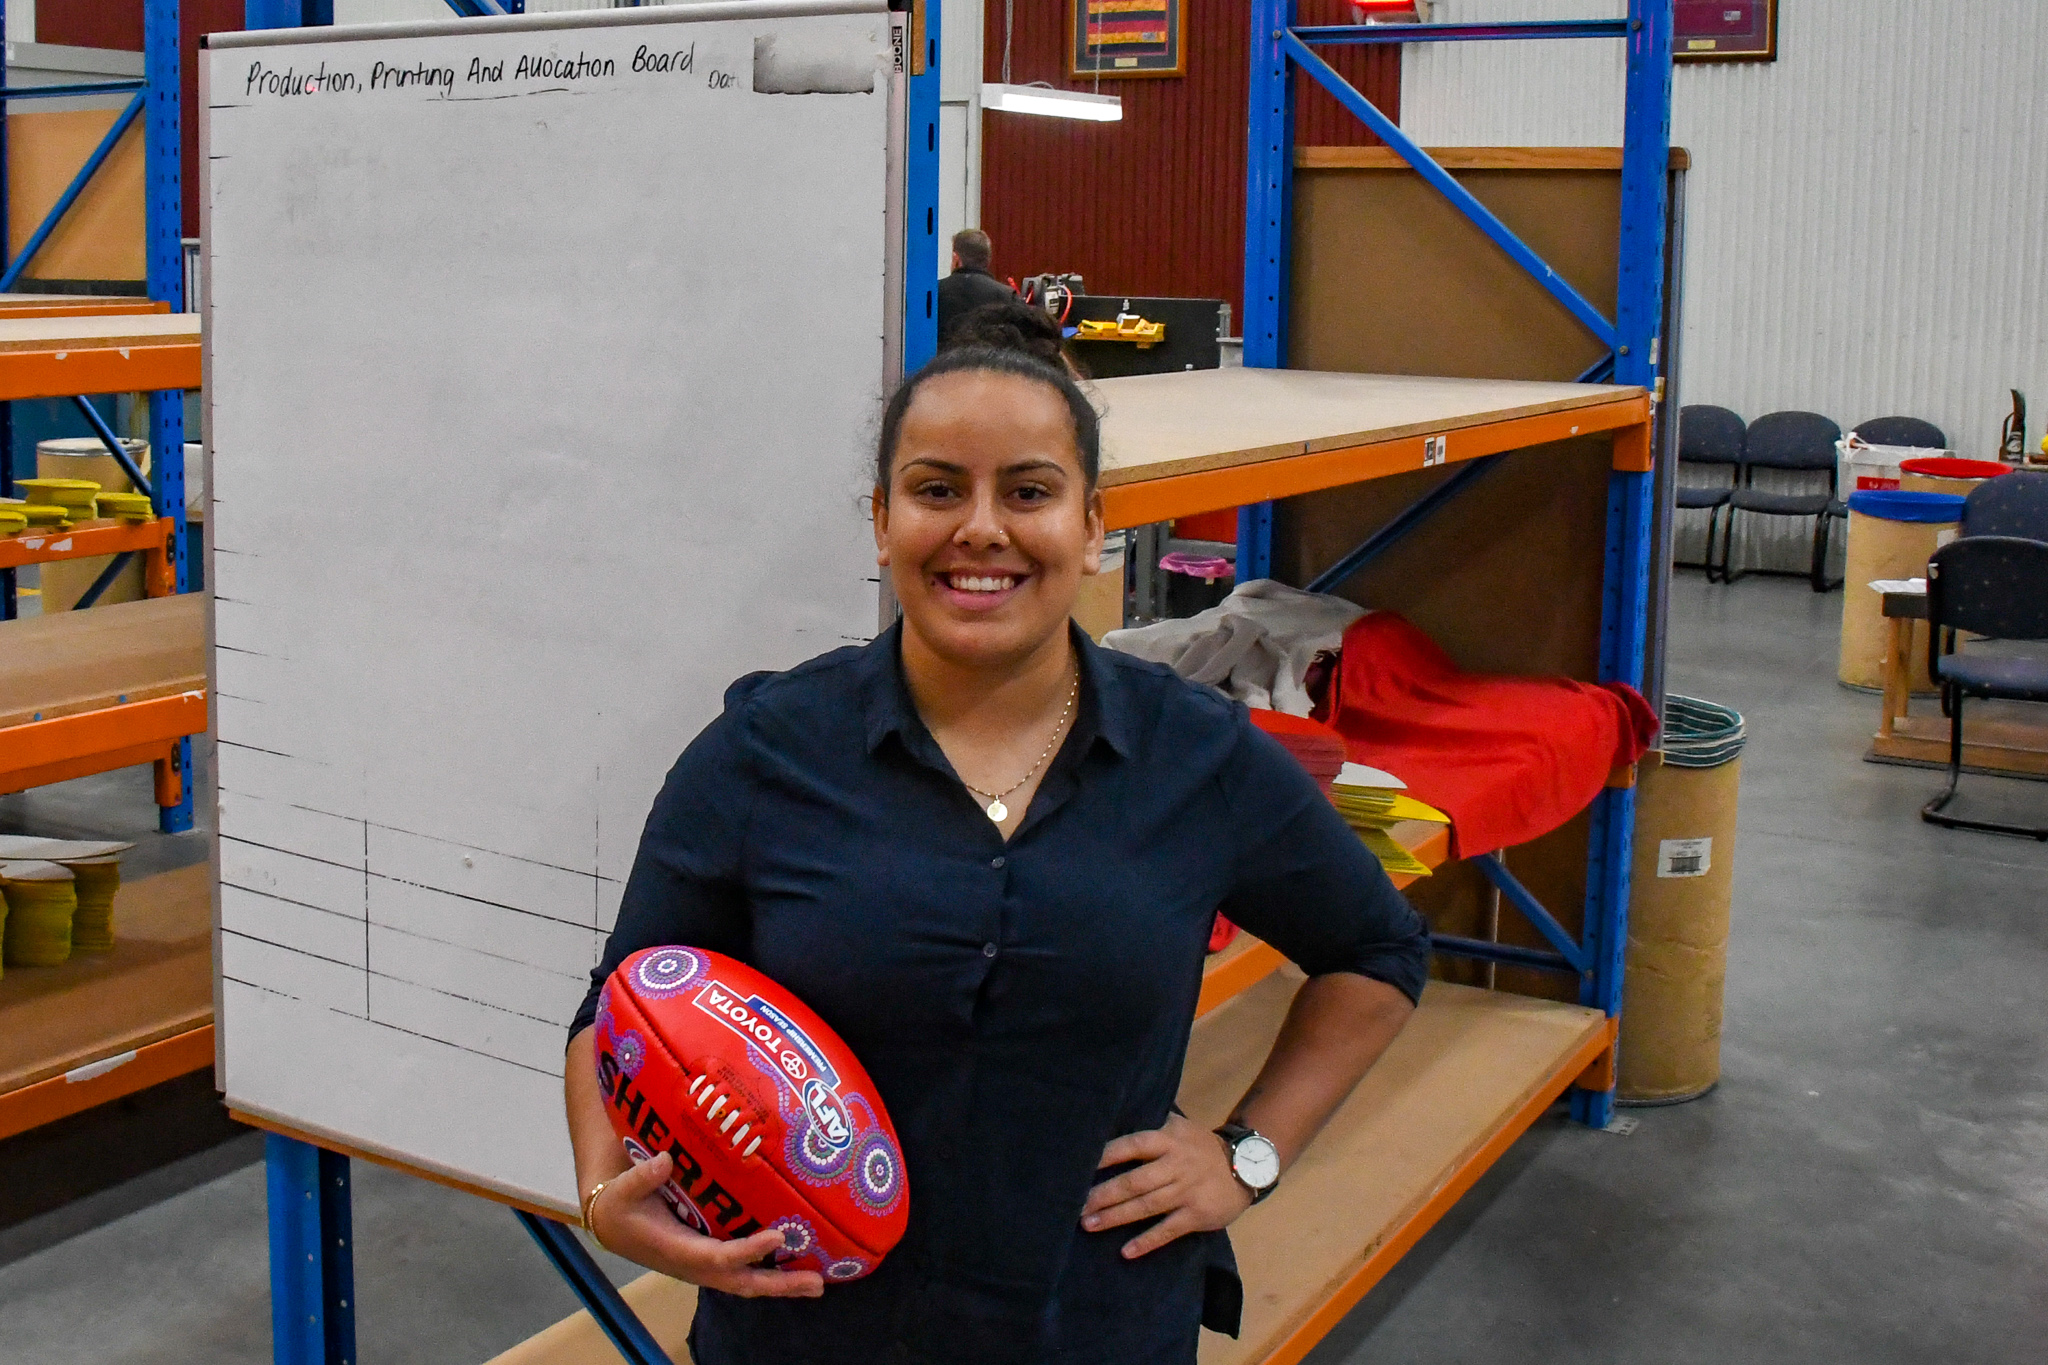 Artist Rheanna Lotter with the Sherrin footballs she designed especially for the AFL's Sir Doug Nicholls Round